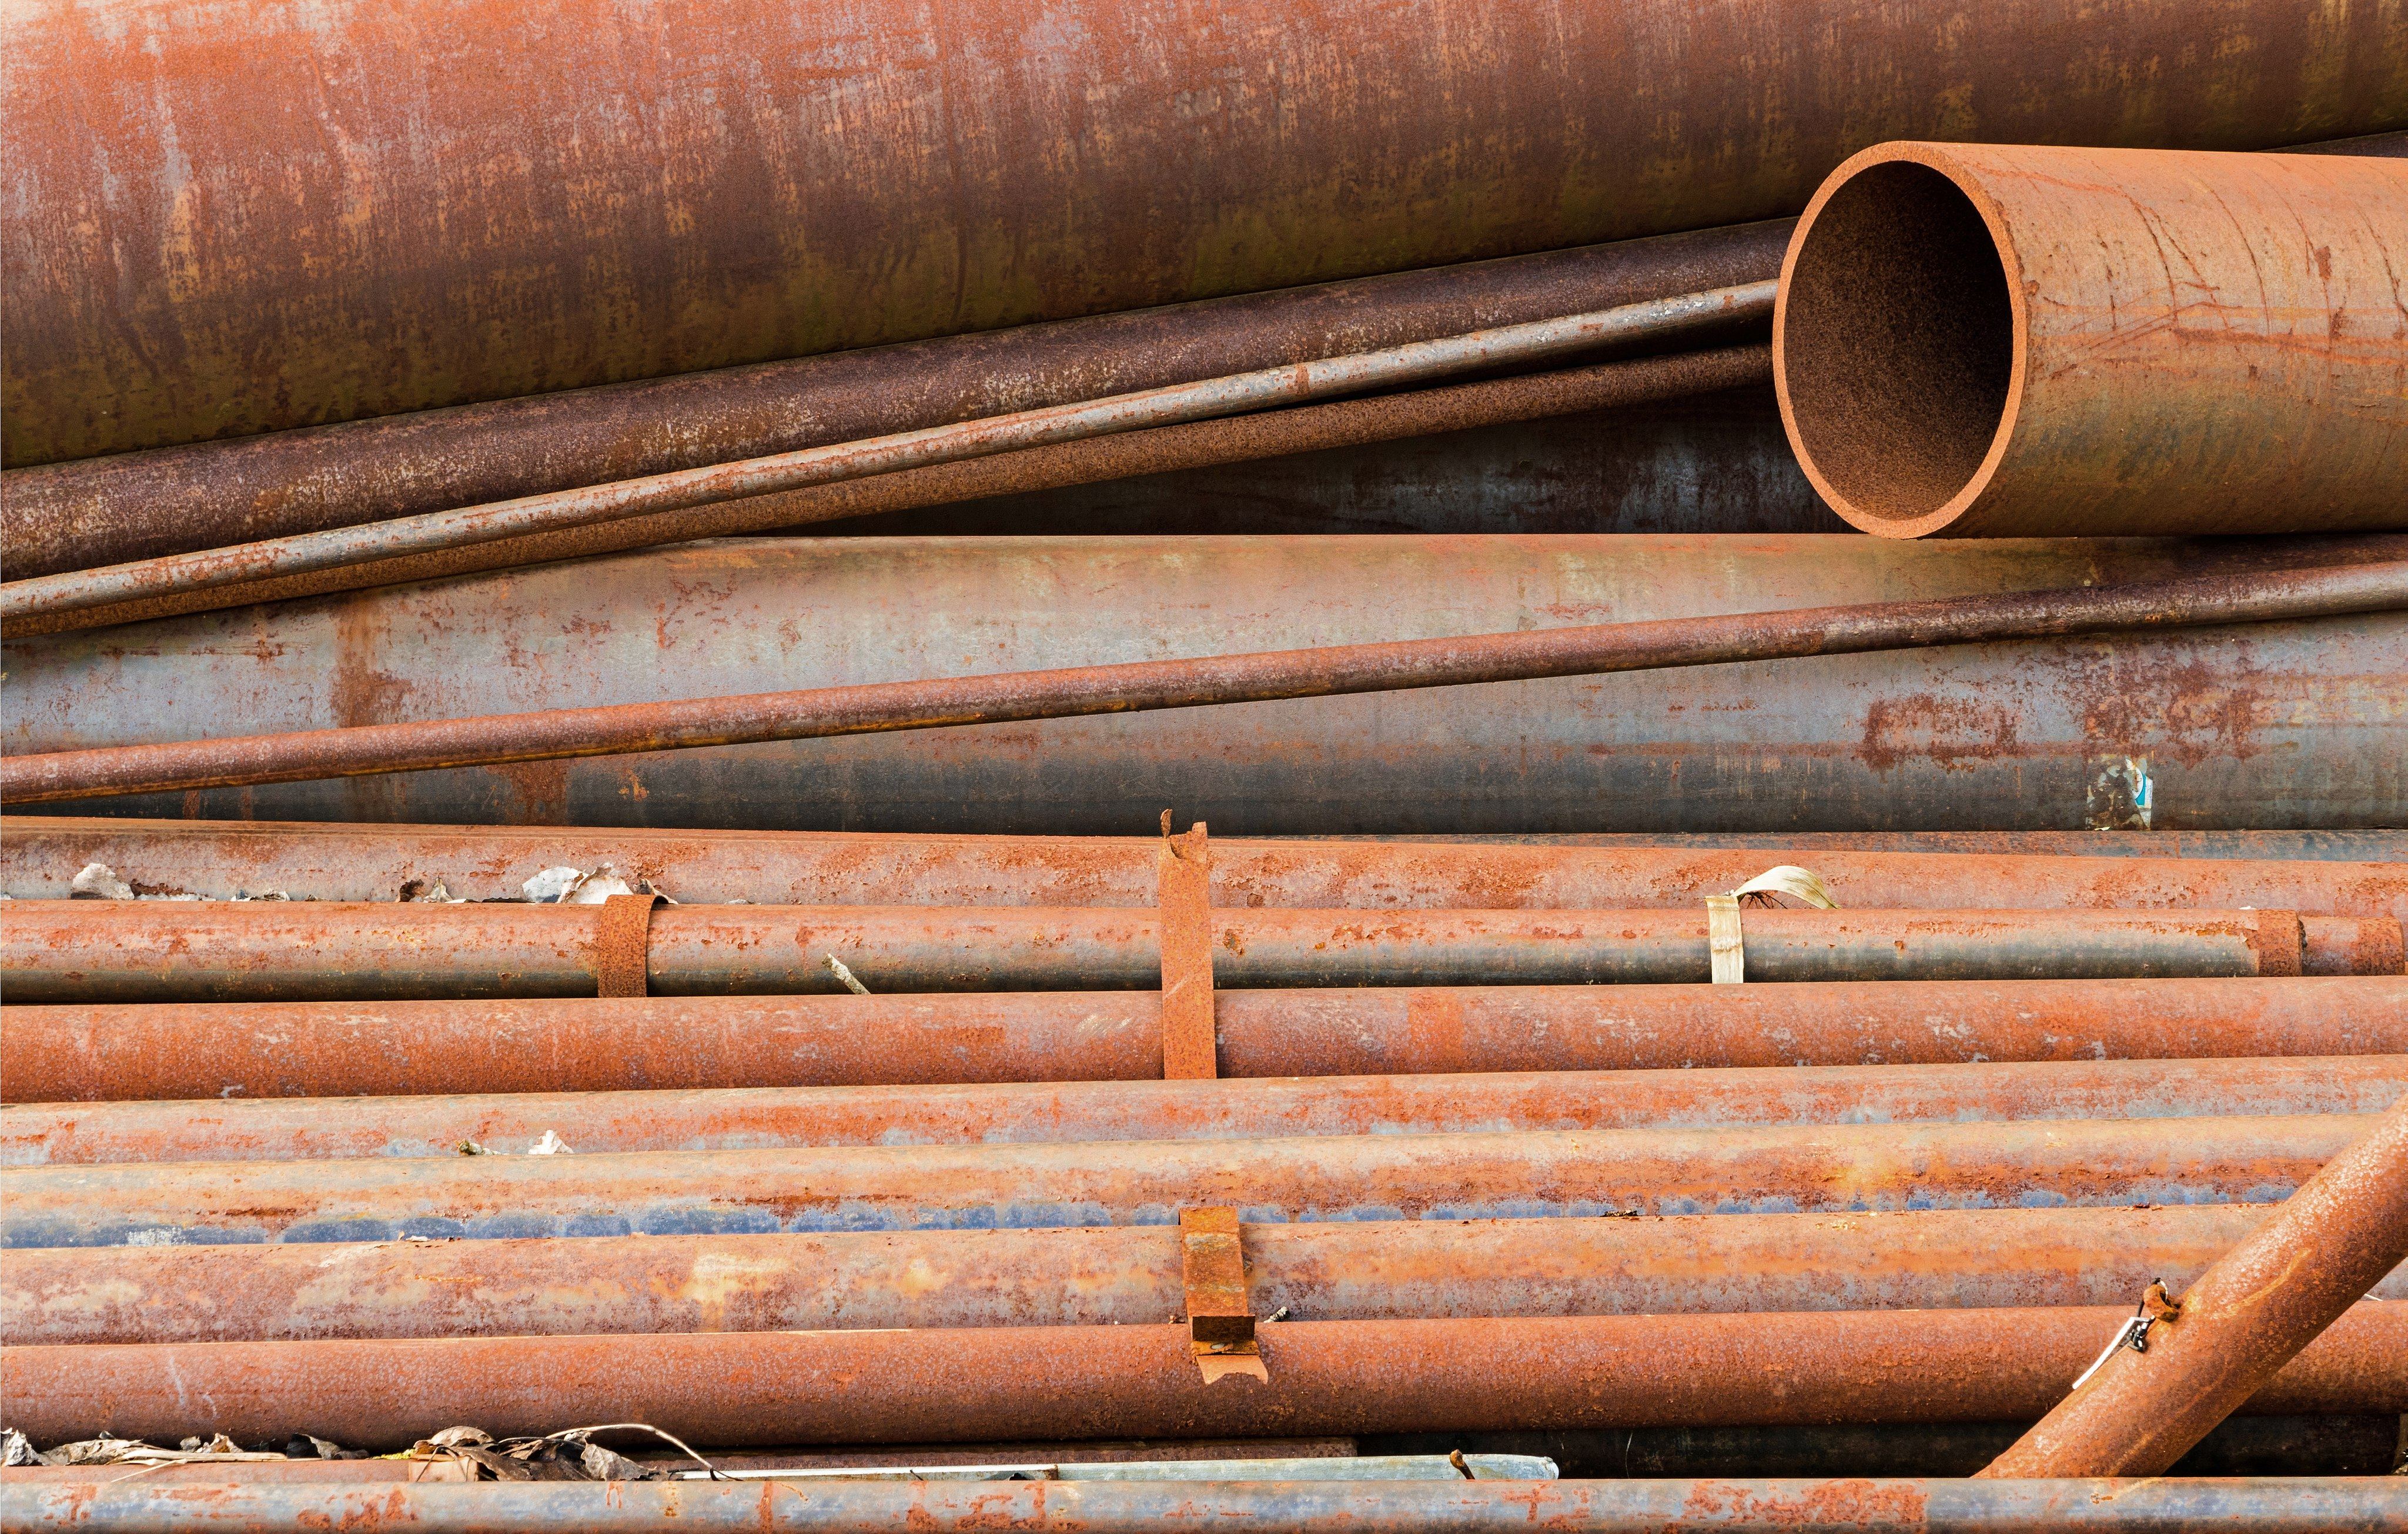 Infrastructure Agreement Includes Replacing 100% of Nation's Lead Pipes